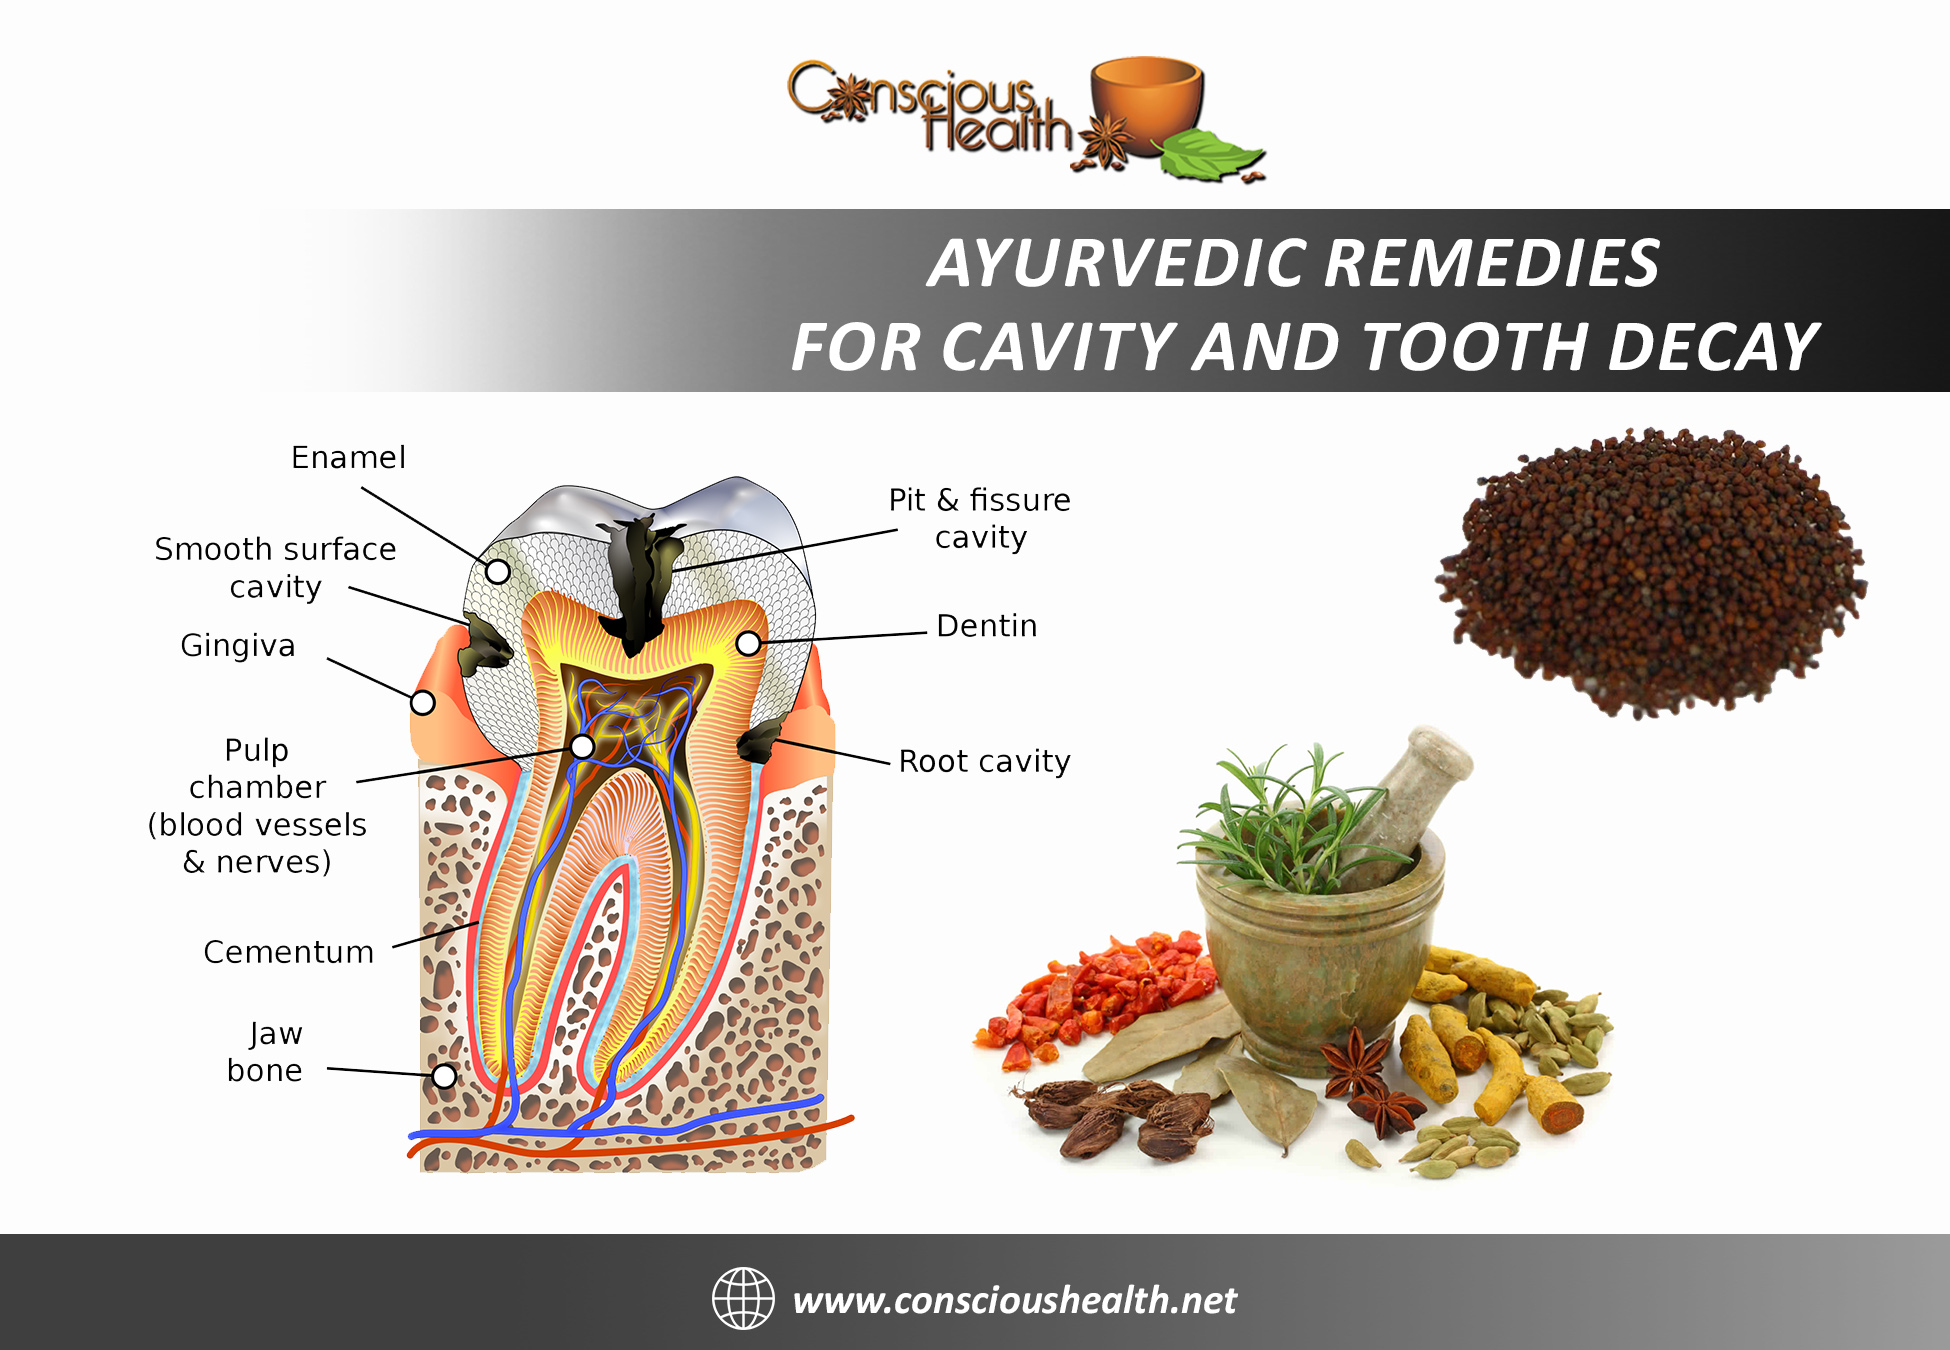 Ayurvedic Remedies for Cavity and Tooth Decay - Conscious Health